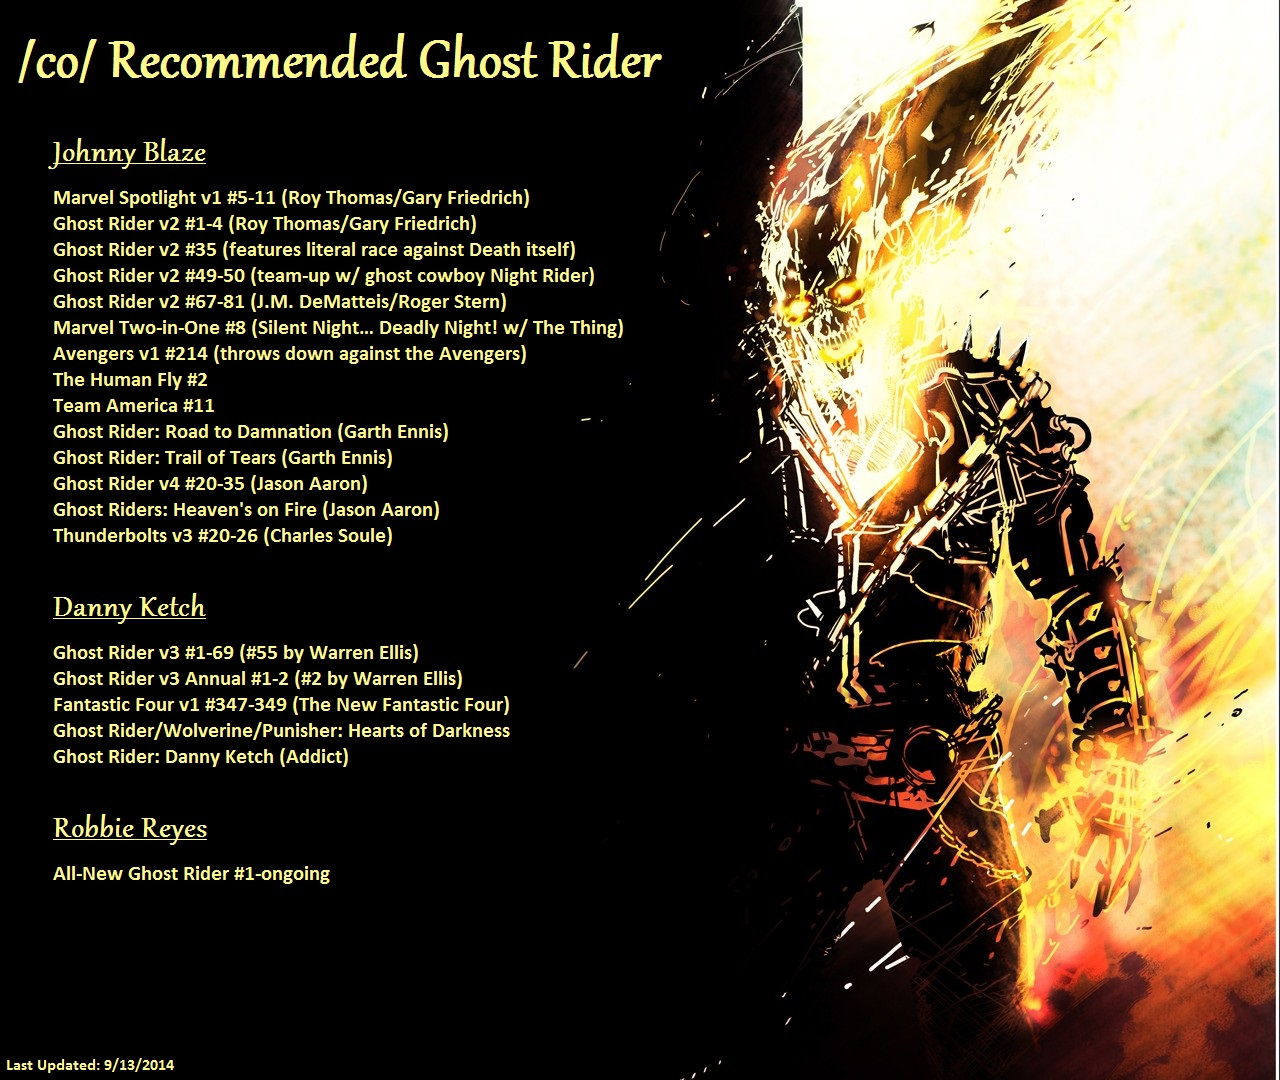 Ghost rider sextoons naked pictures